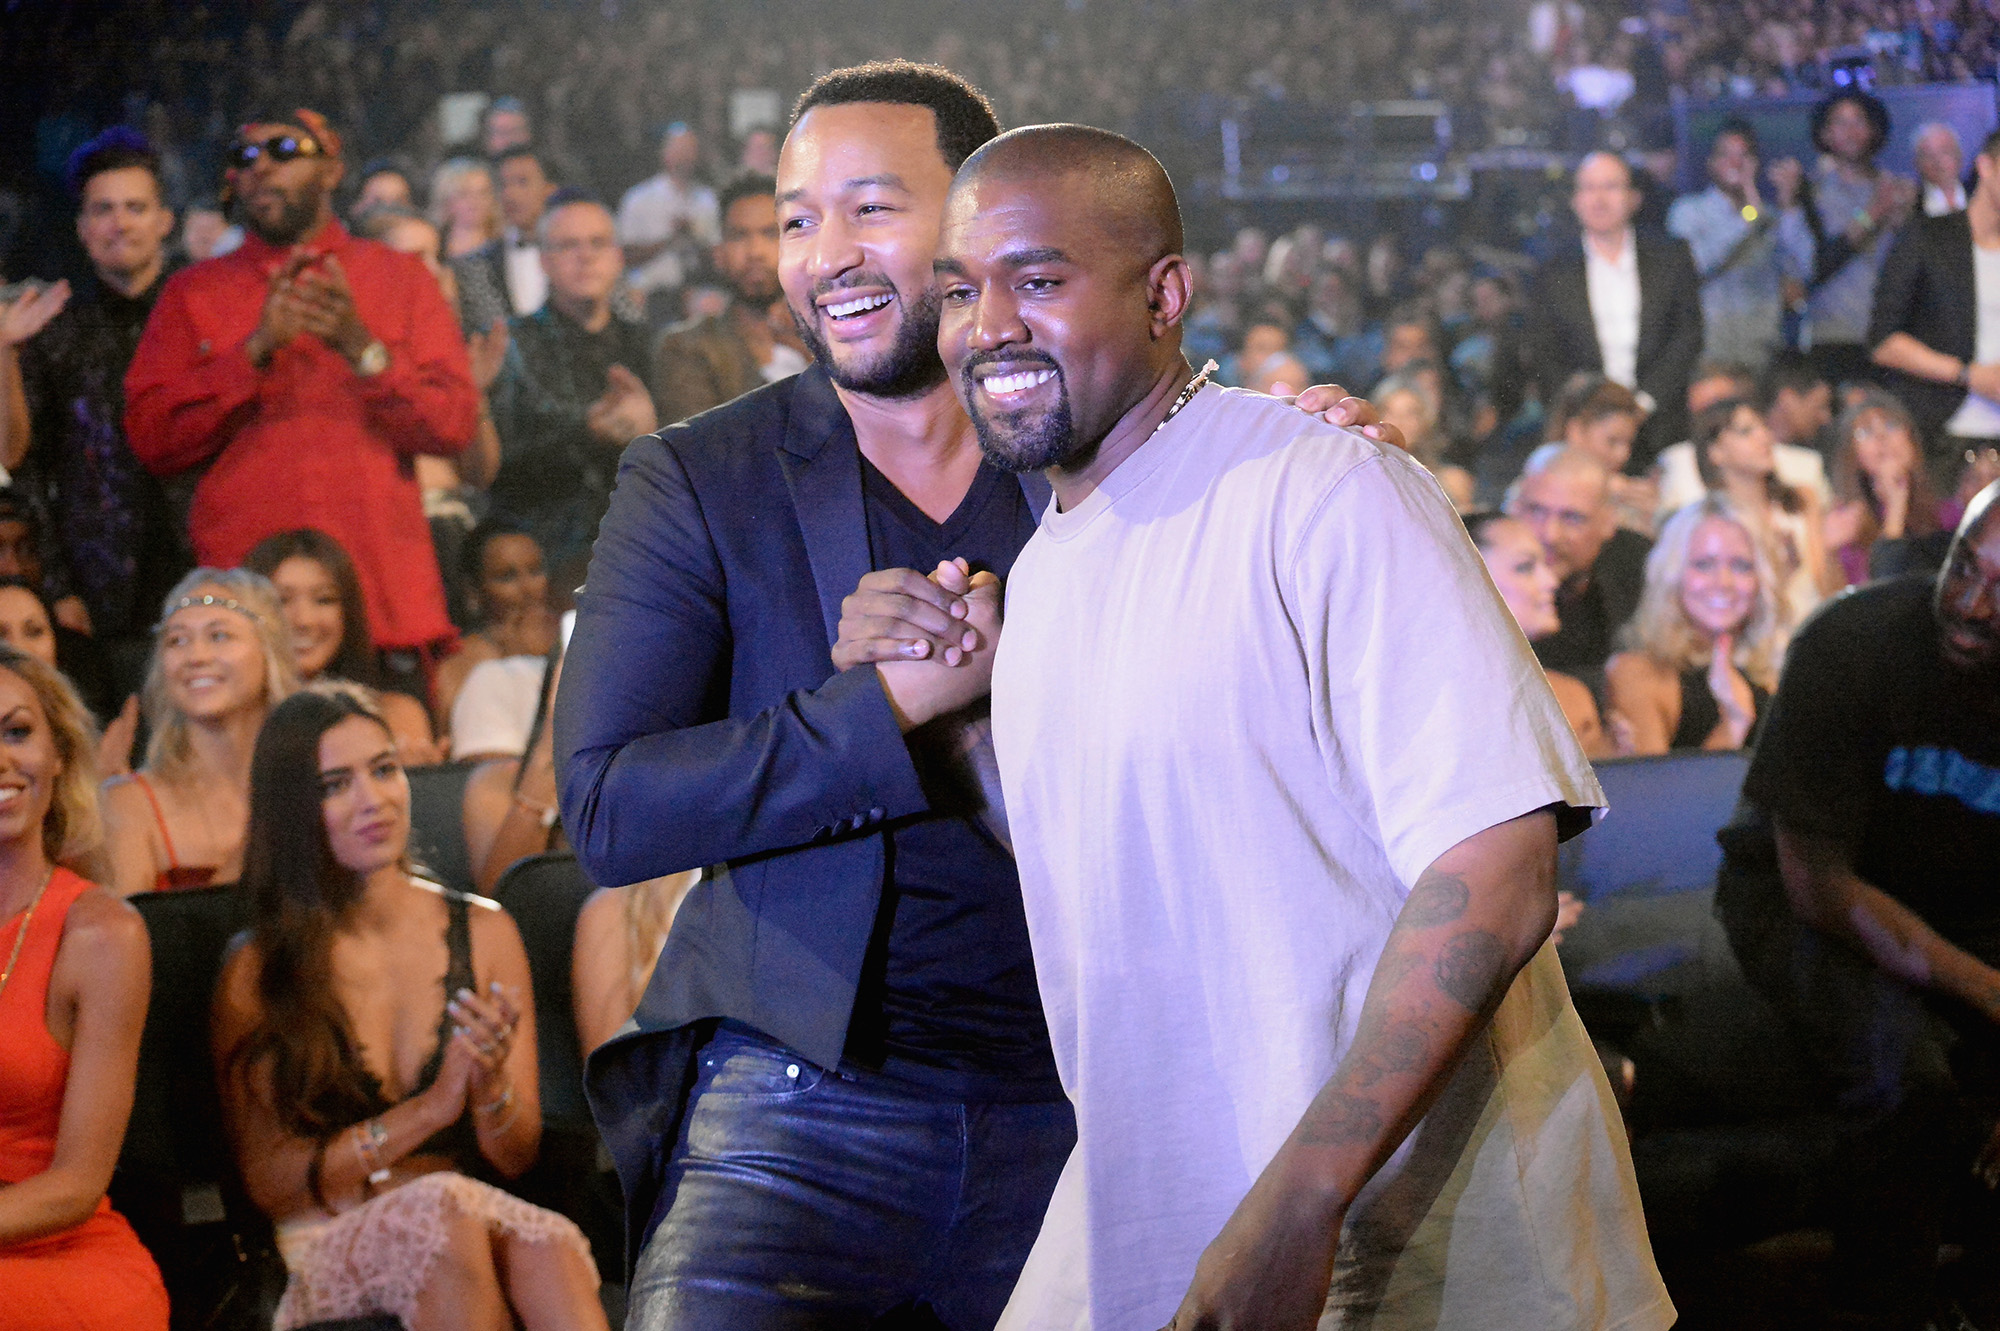 John Legend and Kanye West attend the 2015 MTV Video Music Awards in Los Angeles, California.  (Photo by Jeff Kravitz/MTV1415/FilmMagic)